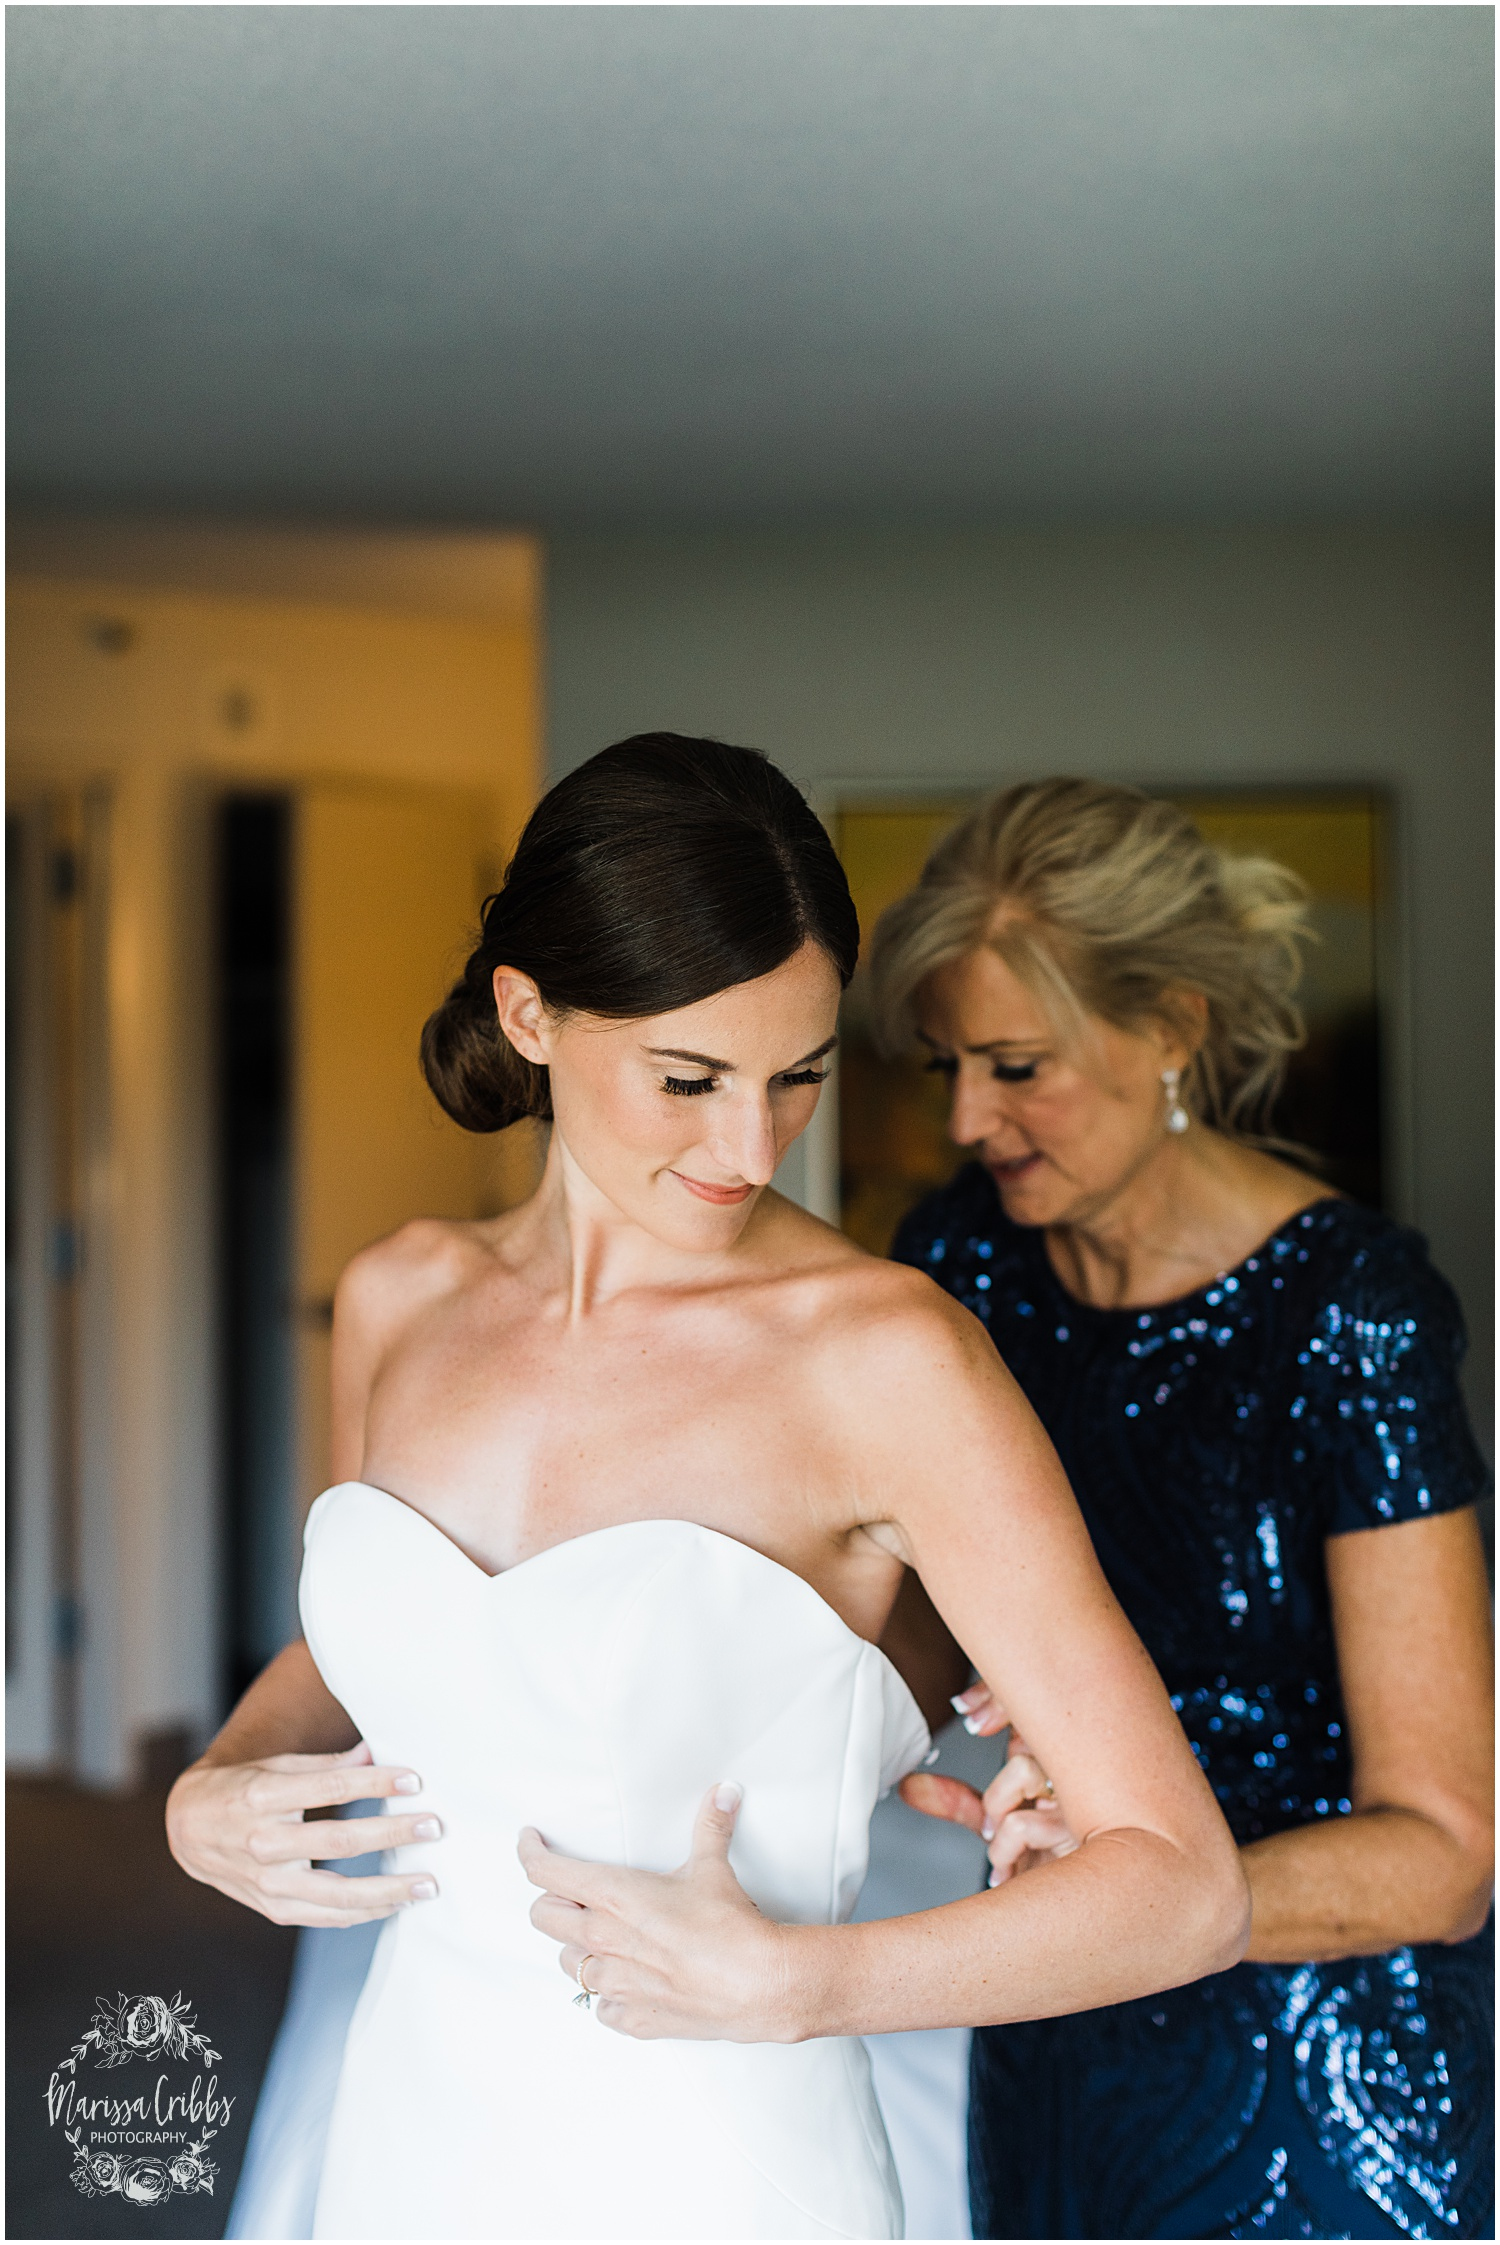 JOANNE & GEORGE MARRIED BLOG | MARISSA CRIBBS PHOTOGRAPHY | THE ABBOTT | KANSAS CITY WEDDING PHOTOS_8996.jpg